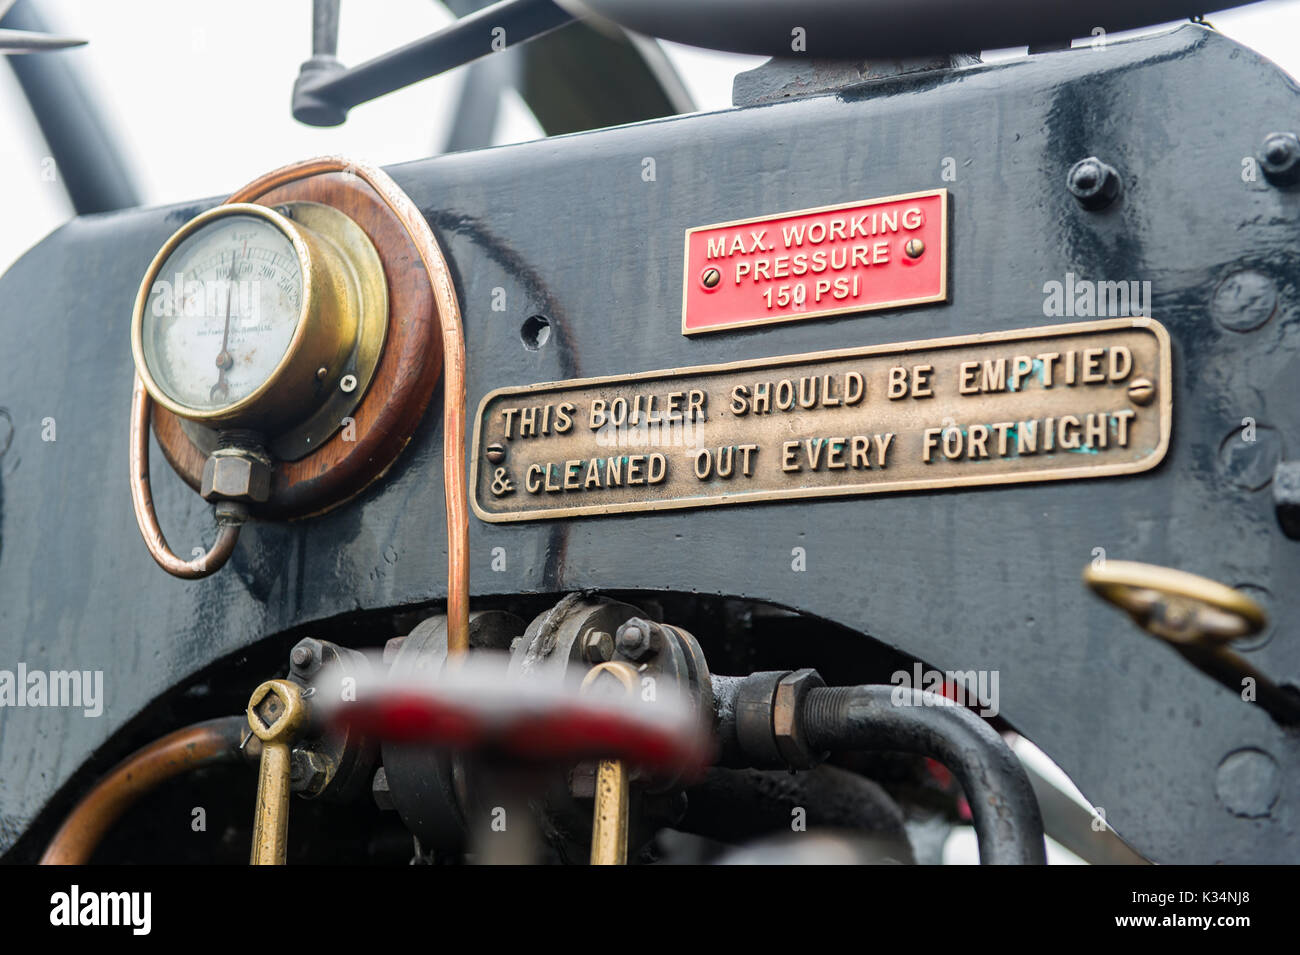 Steam engine pressure gauge, pipes and warning sign. - Stock Image